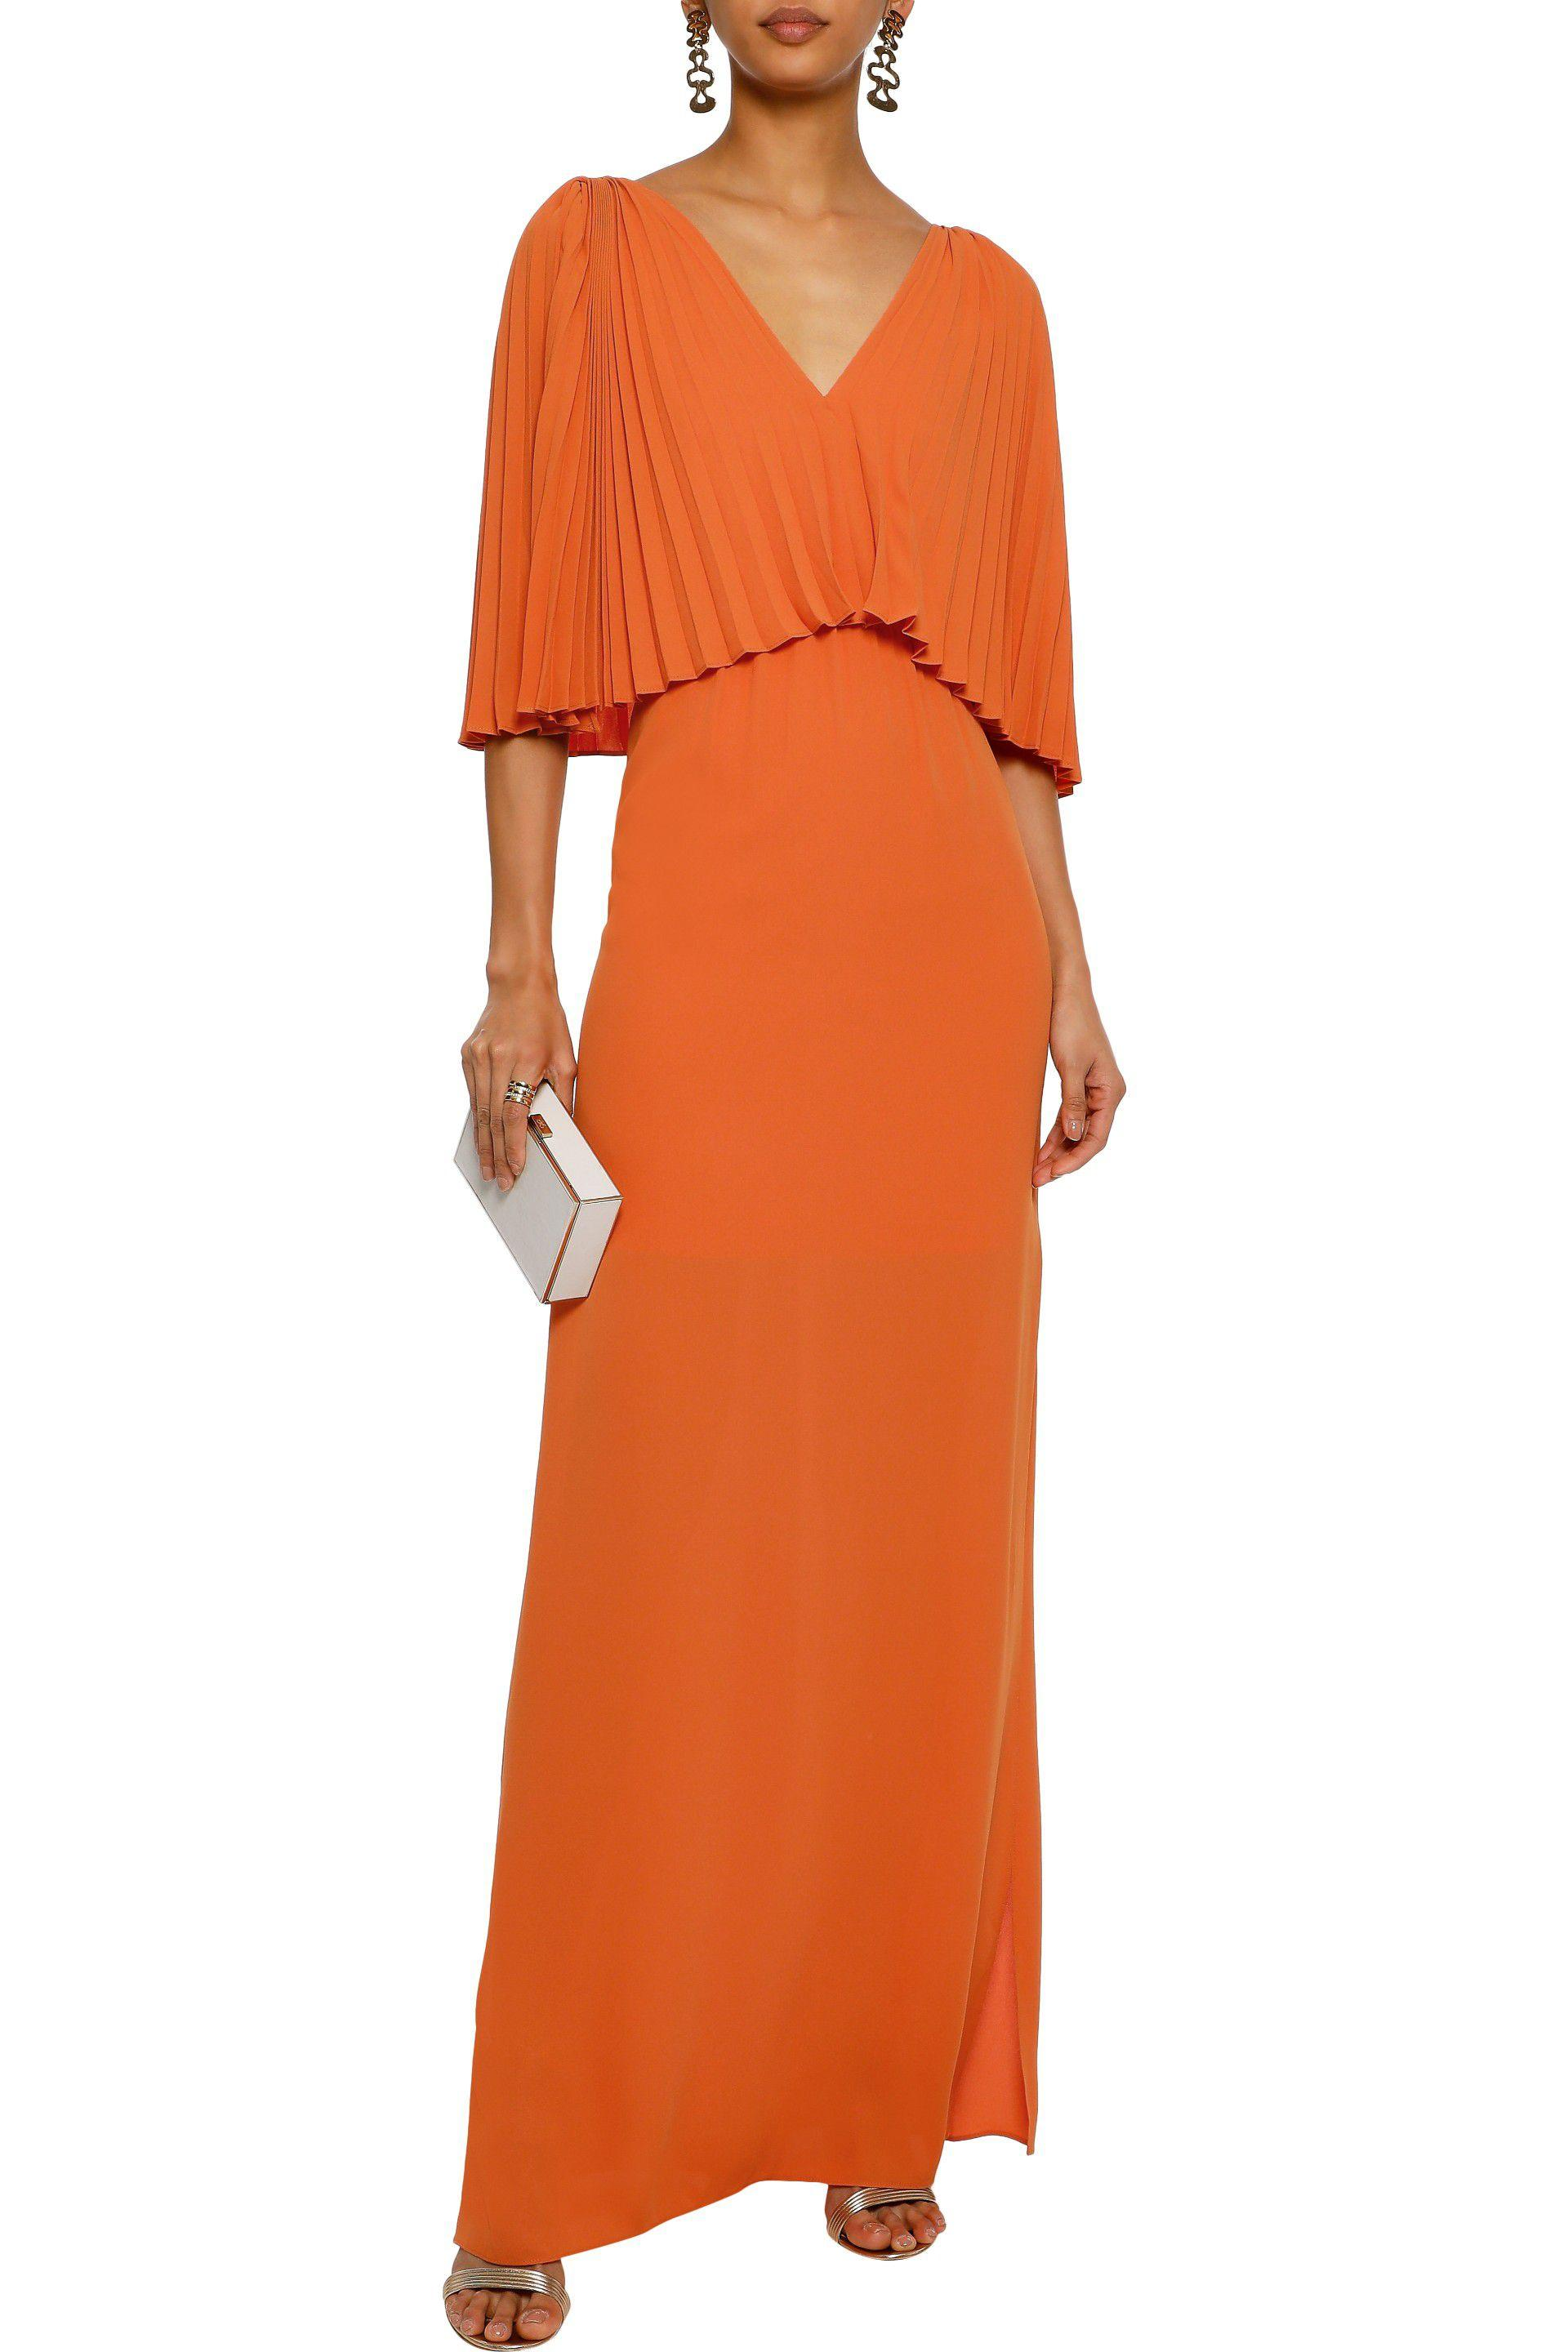 474cf65239a Halston Heritage - Woman Layered Pleated Crepe De Chine Maxi Dress Orange -  Lyst. View fullscreen